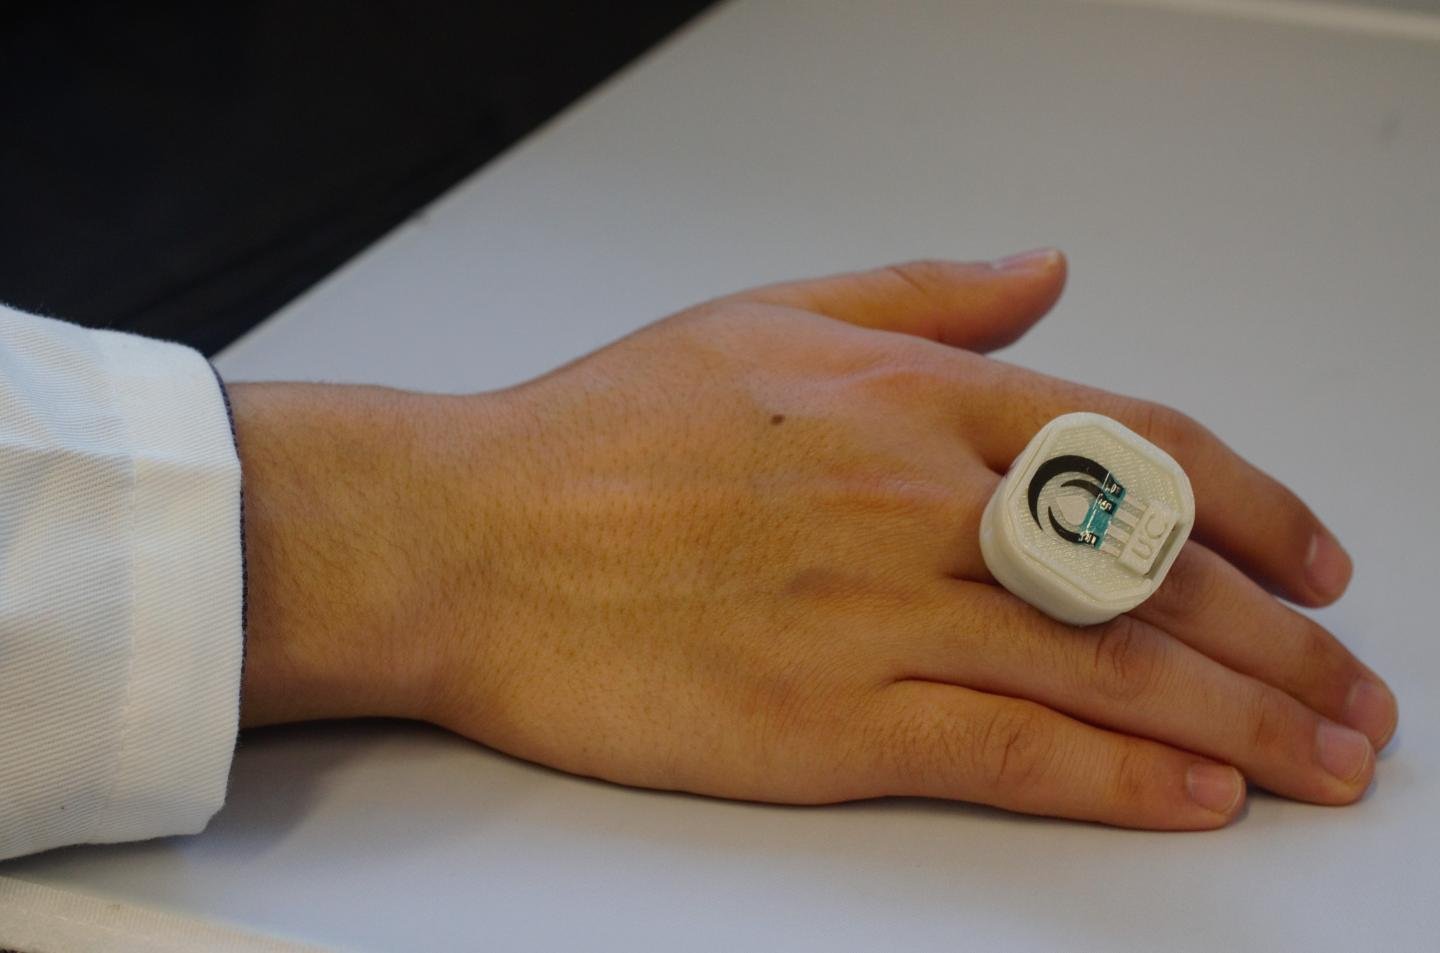 The prototype ring currently detects explosives and nerve agents, but it could reportedly be adapted to detect other harmful elements